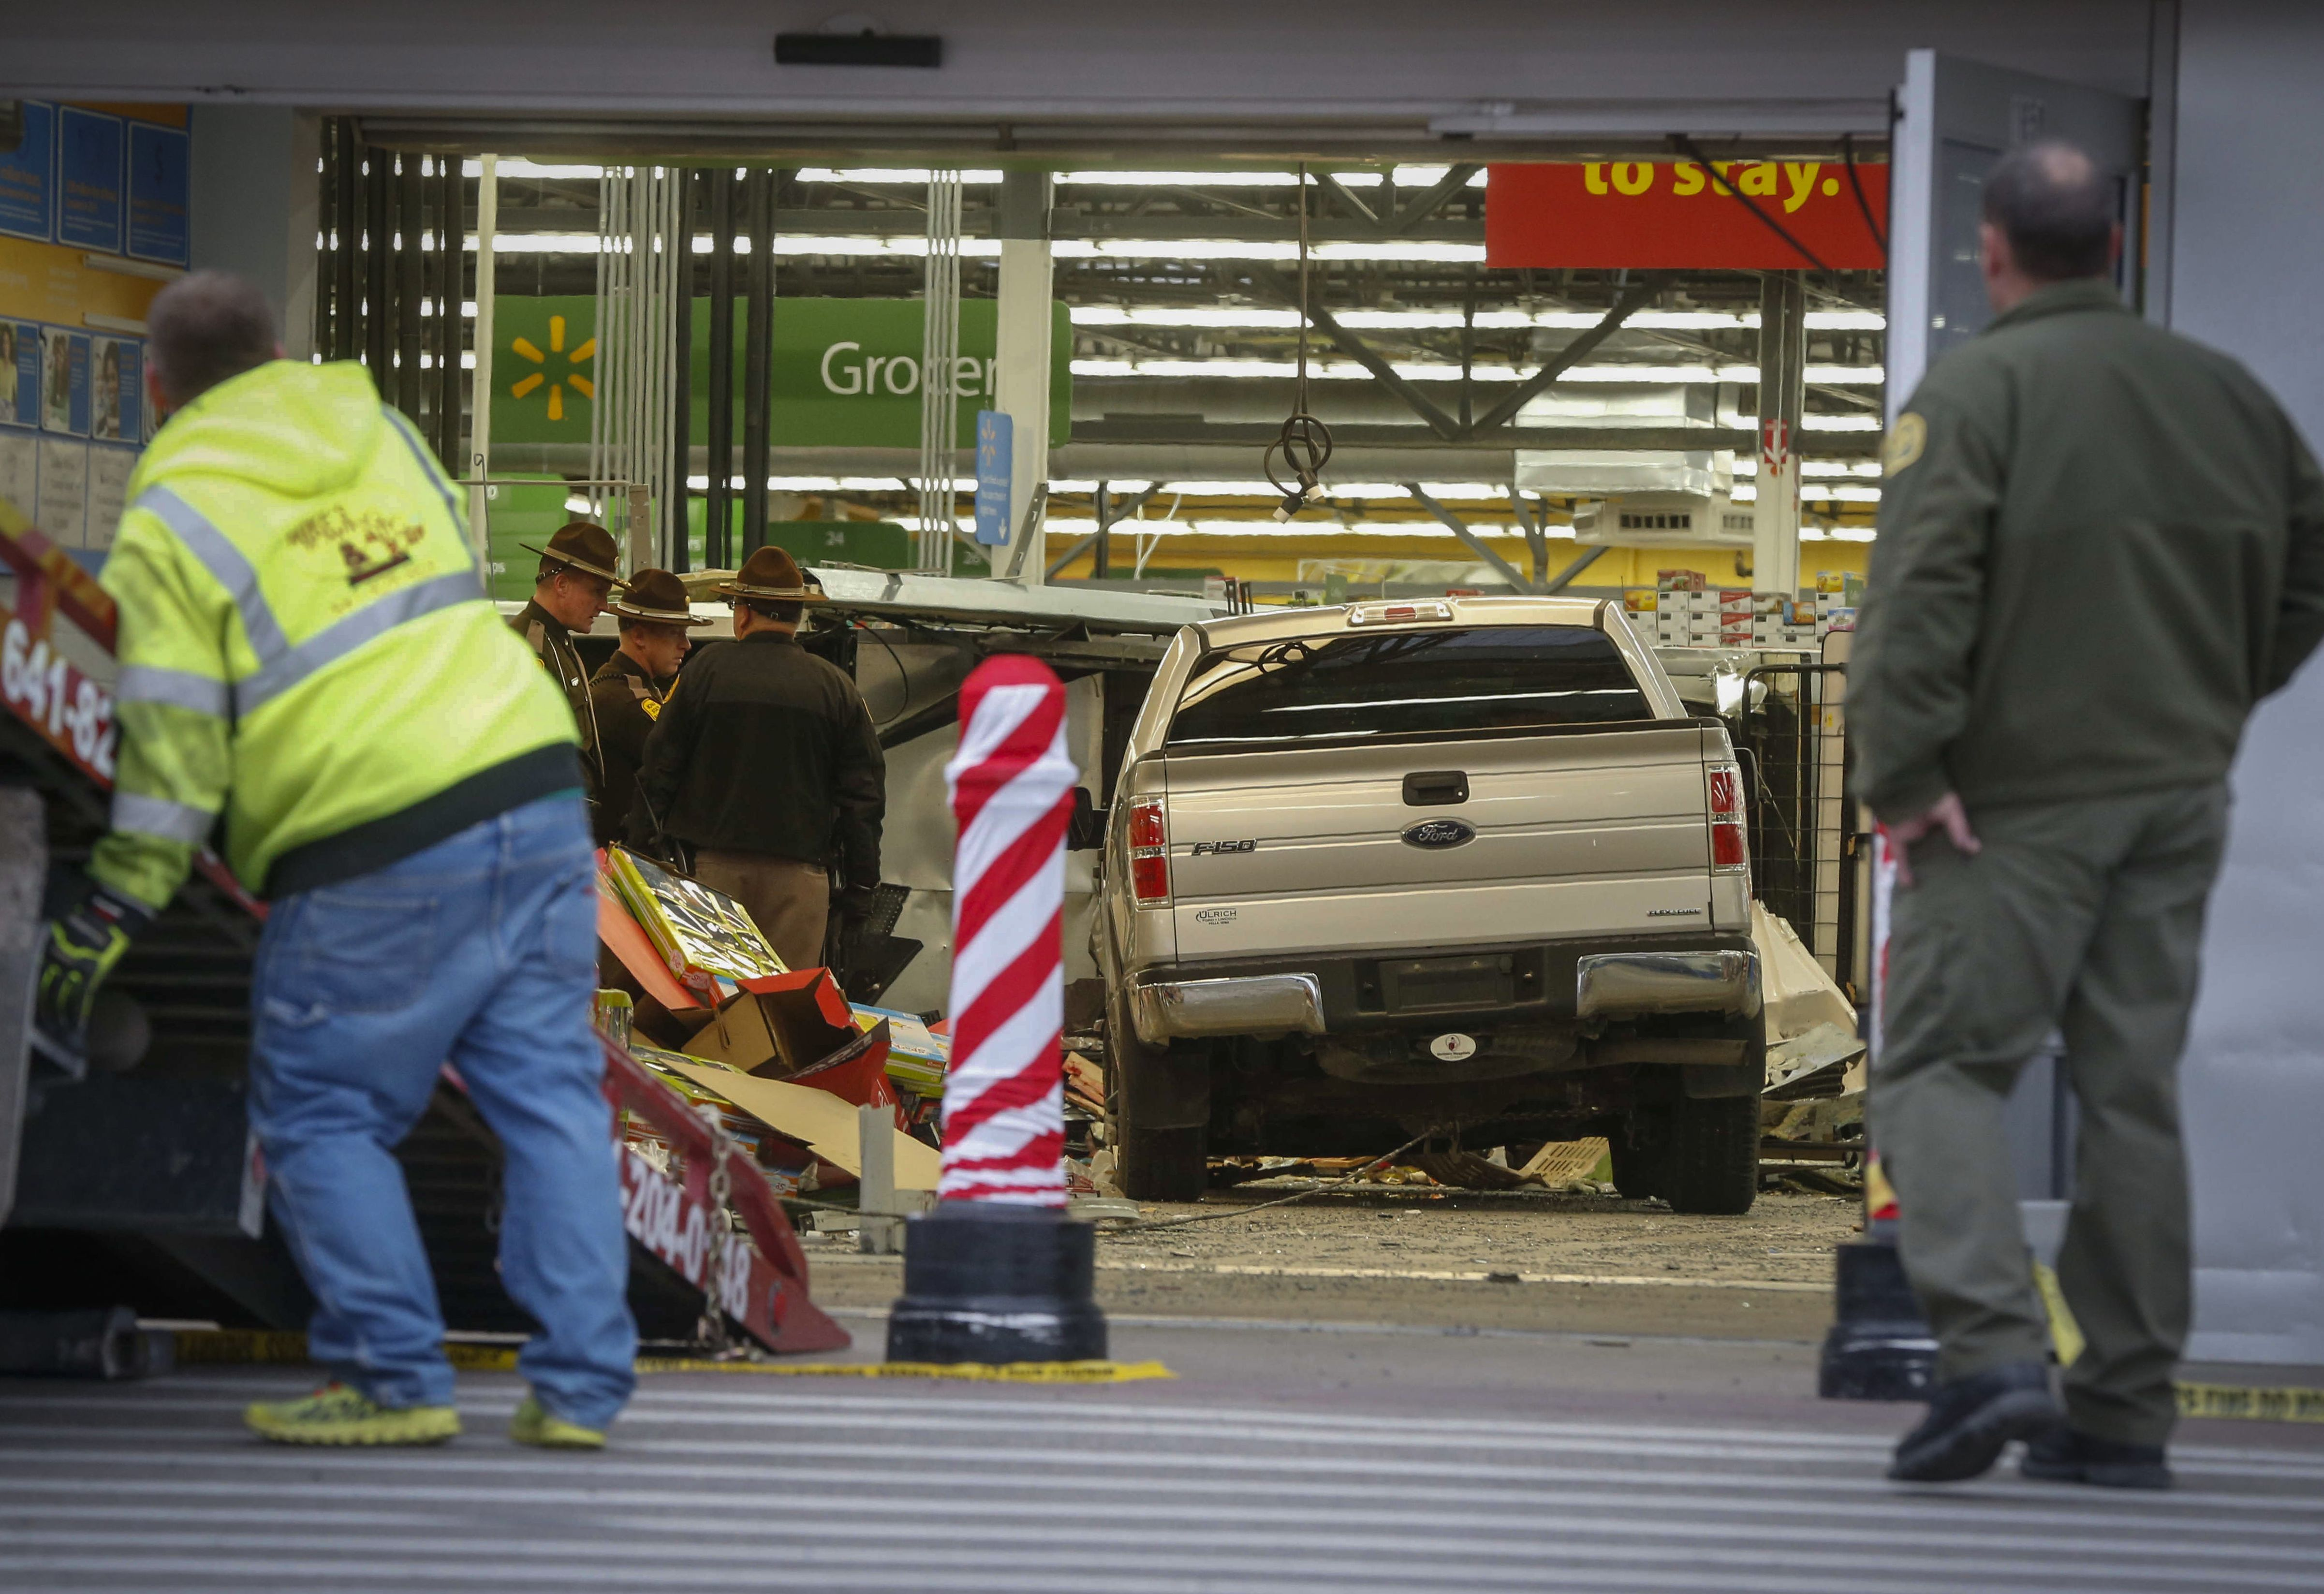 Truck Crashes into WalMart, Causing Fatalities and